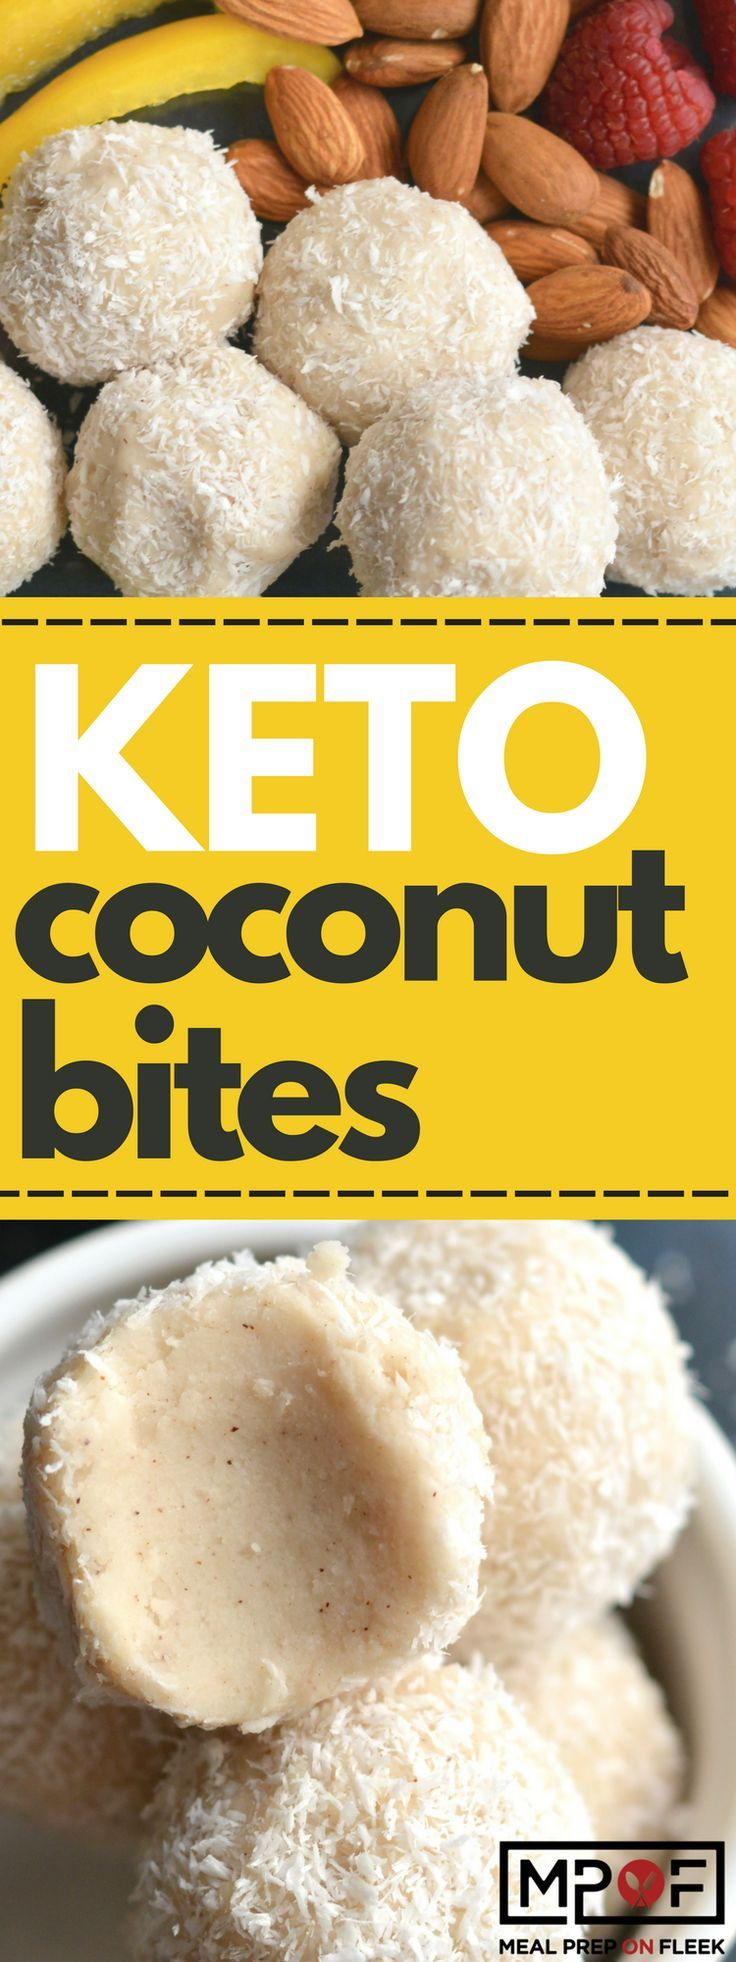 These sugar free coconut balls are naturally sweetened with coconut, cinnamon and stevia. A no-bake, low-carb snack you can't go wrong with! Awesome fat bombs. #keto #ketogenic #fatbomb #fatbombs